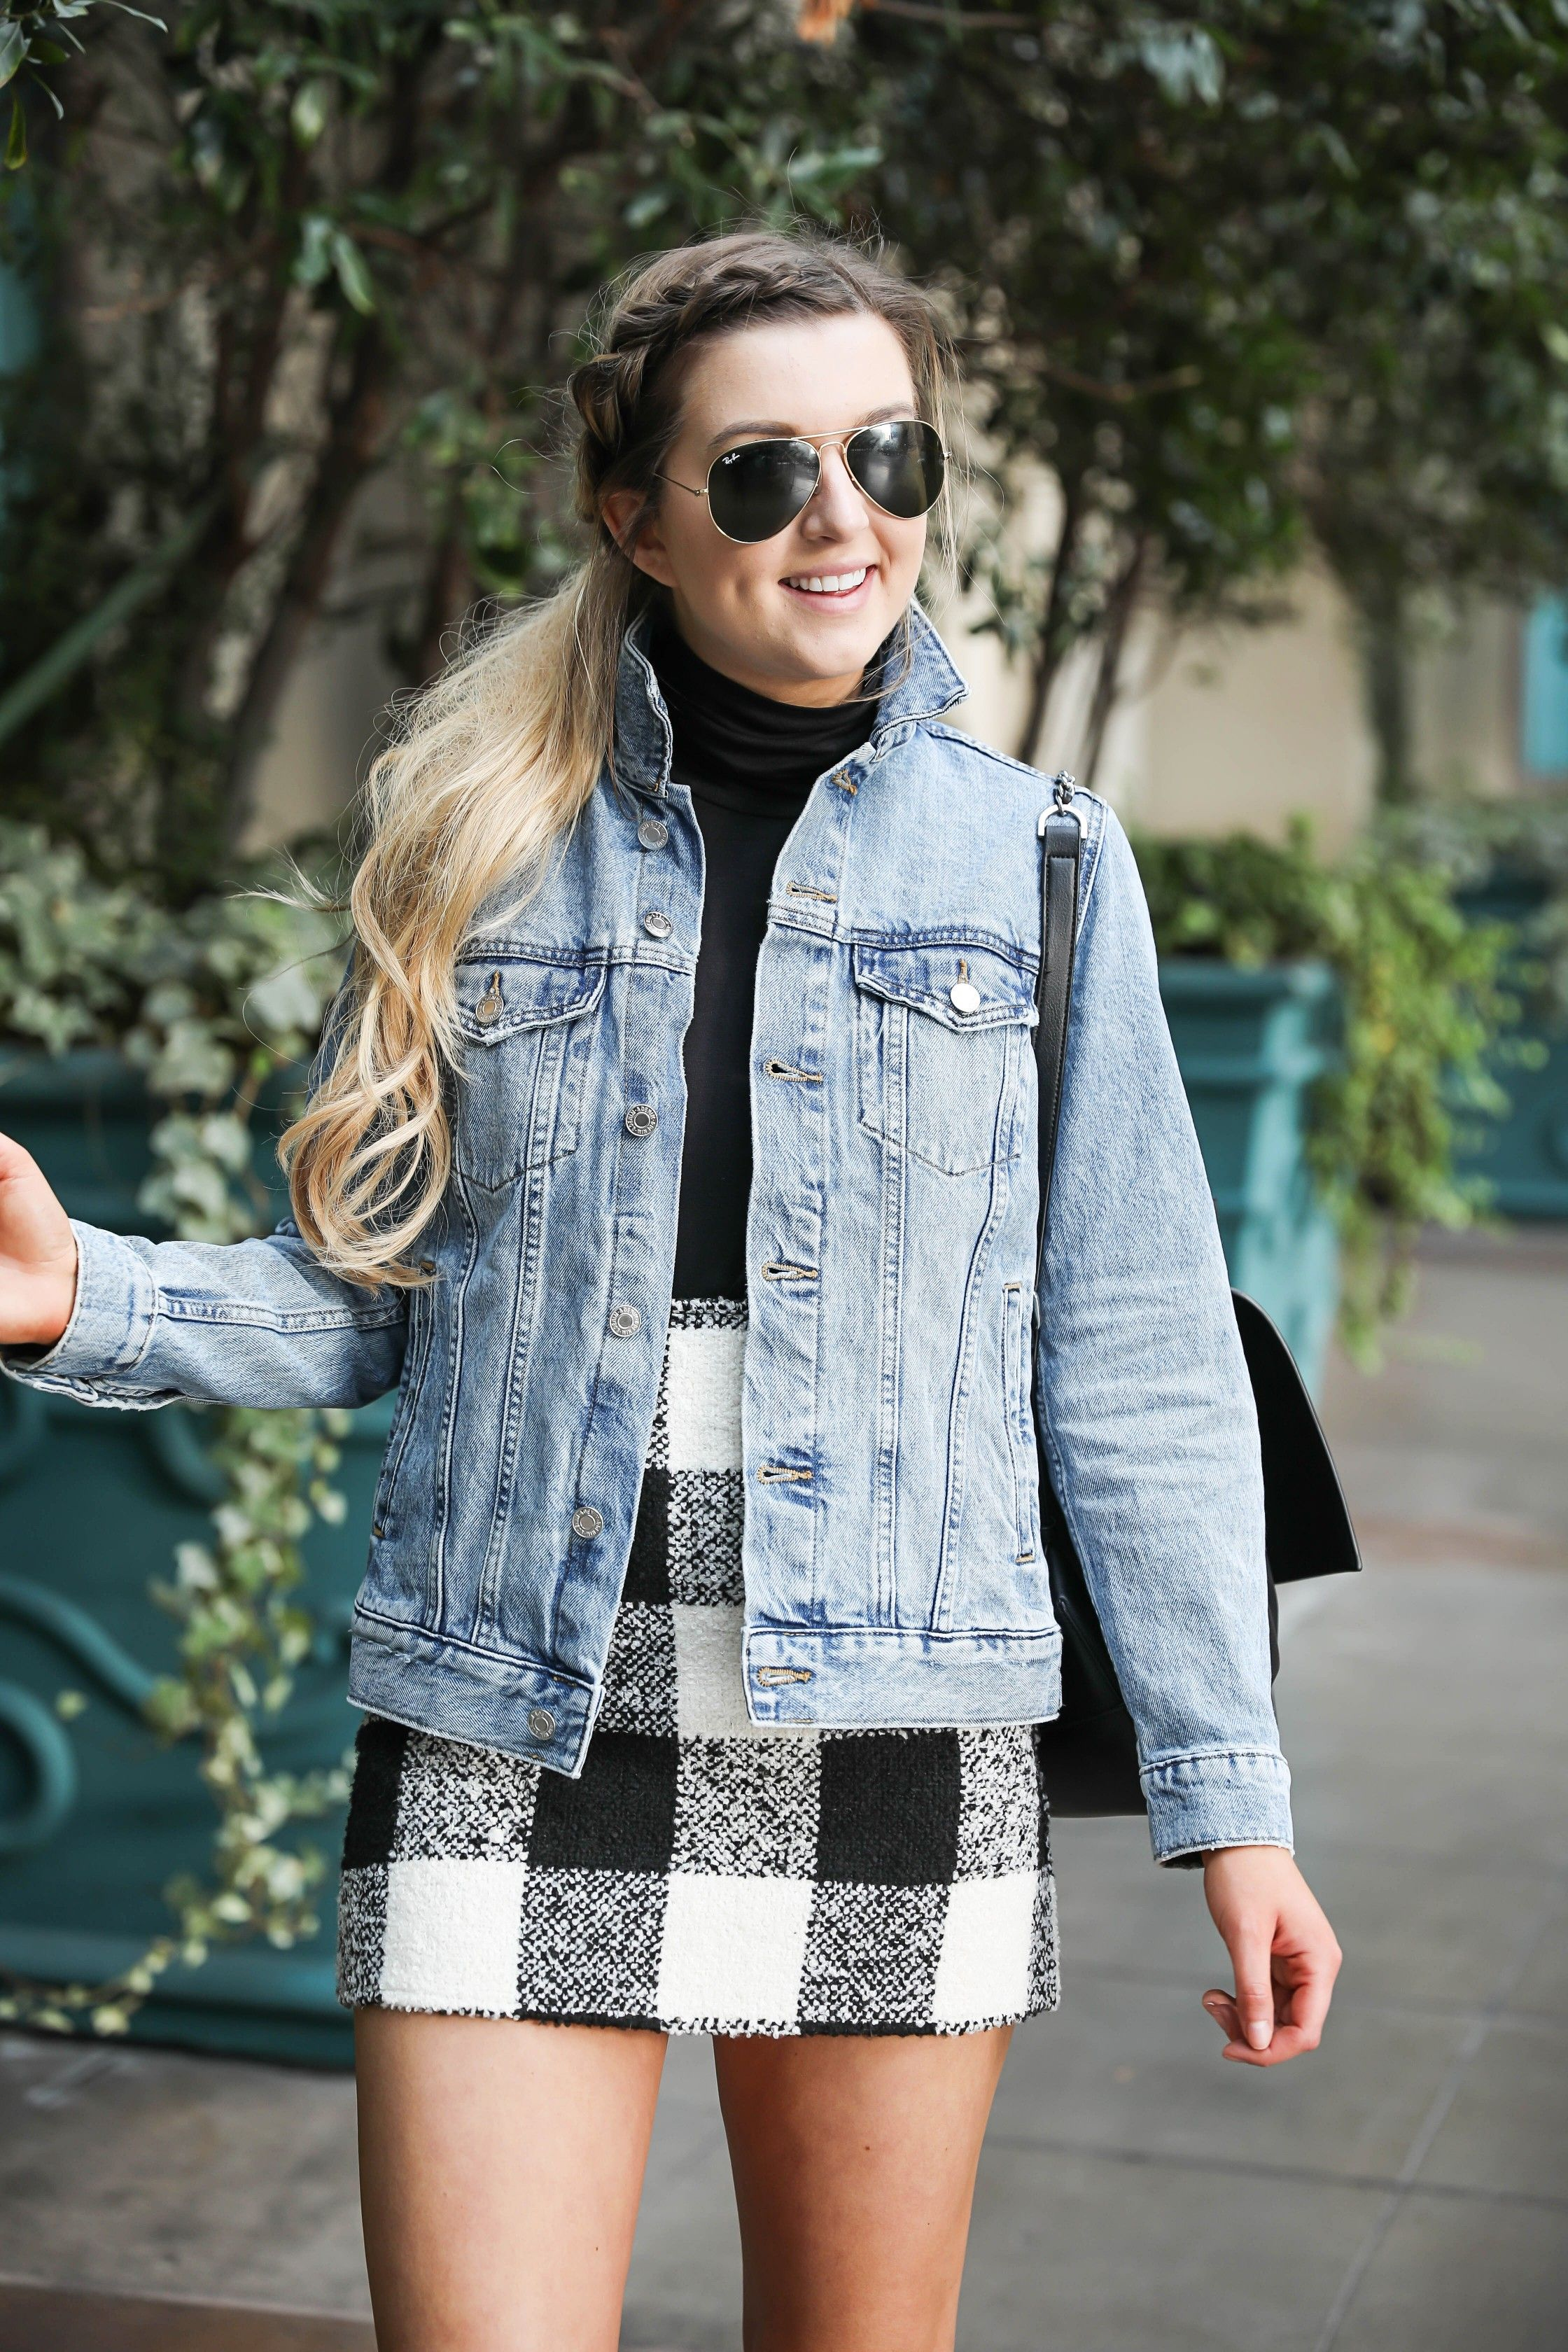 Jean Jacket And Plaid Skirt At The Venetian Hotel Casino In Las Vegas Details On Fashion Blog Daily Dose Of Charm By Lauren Lin Fashion Clothes Plaid Skirts [ 3360 x 2240 Pixel ]